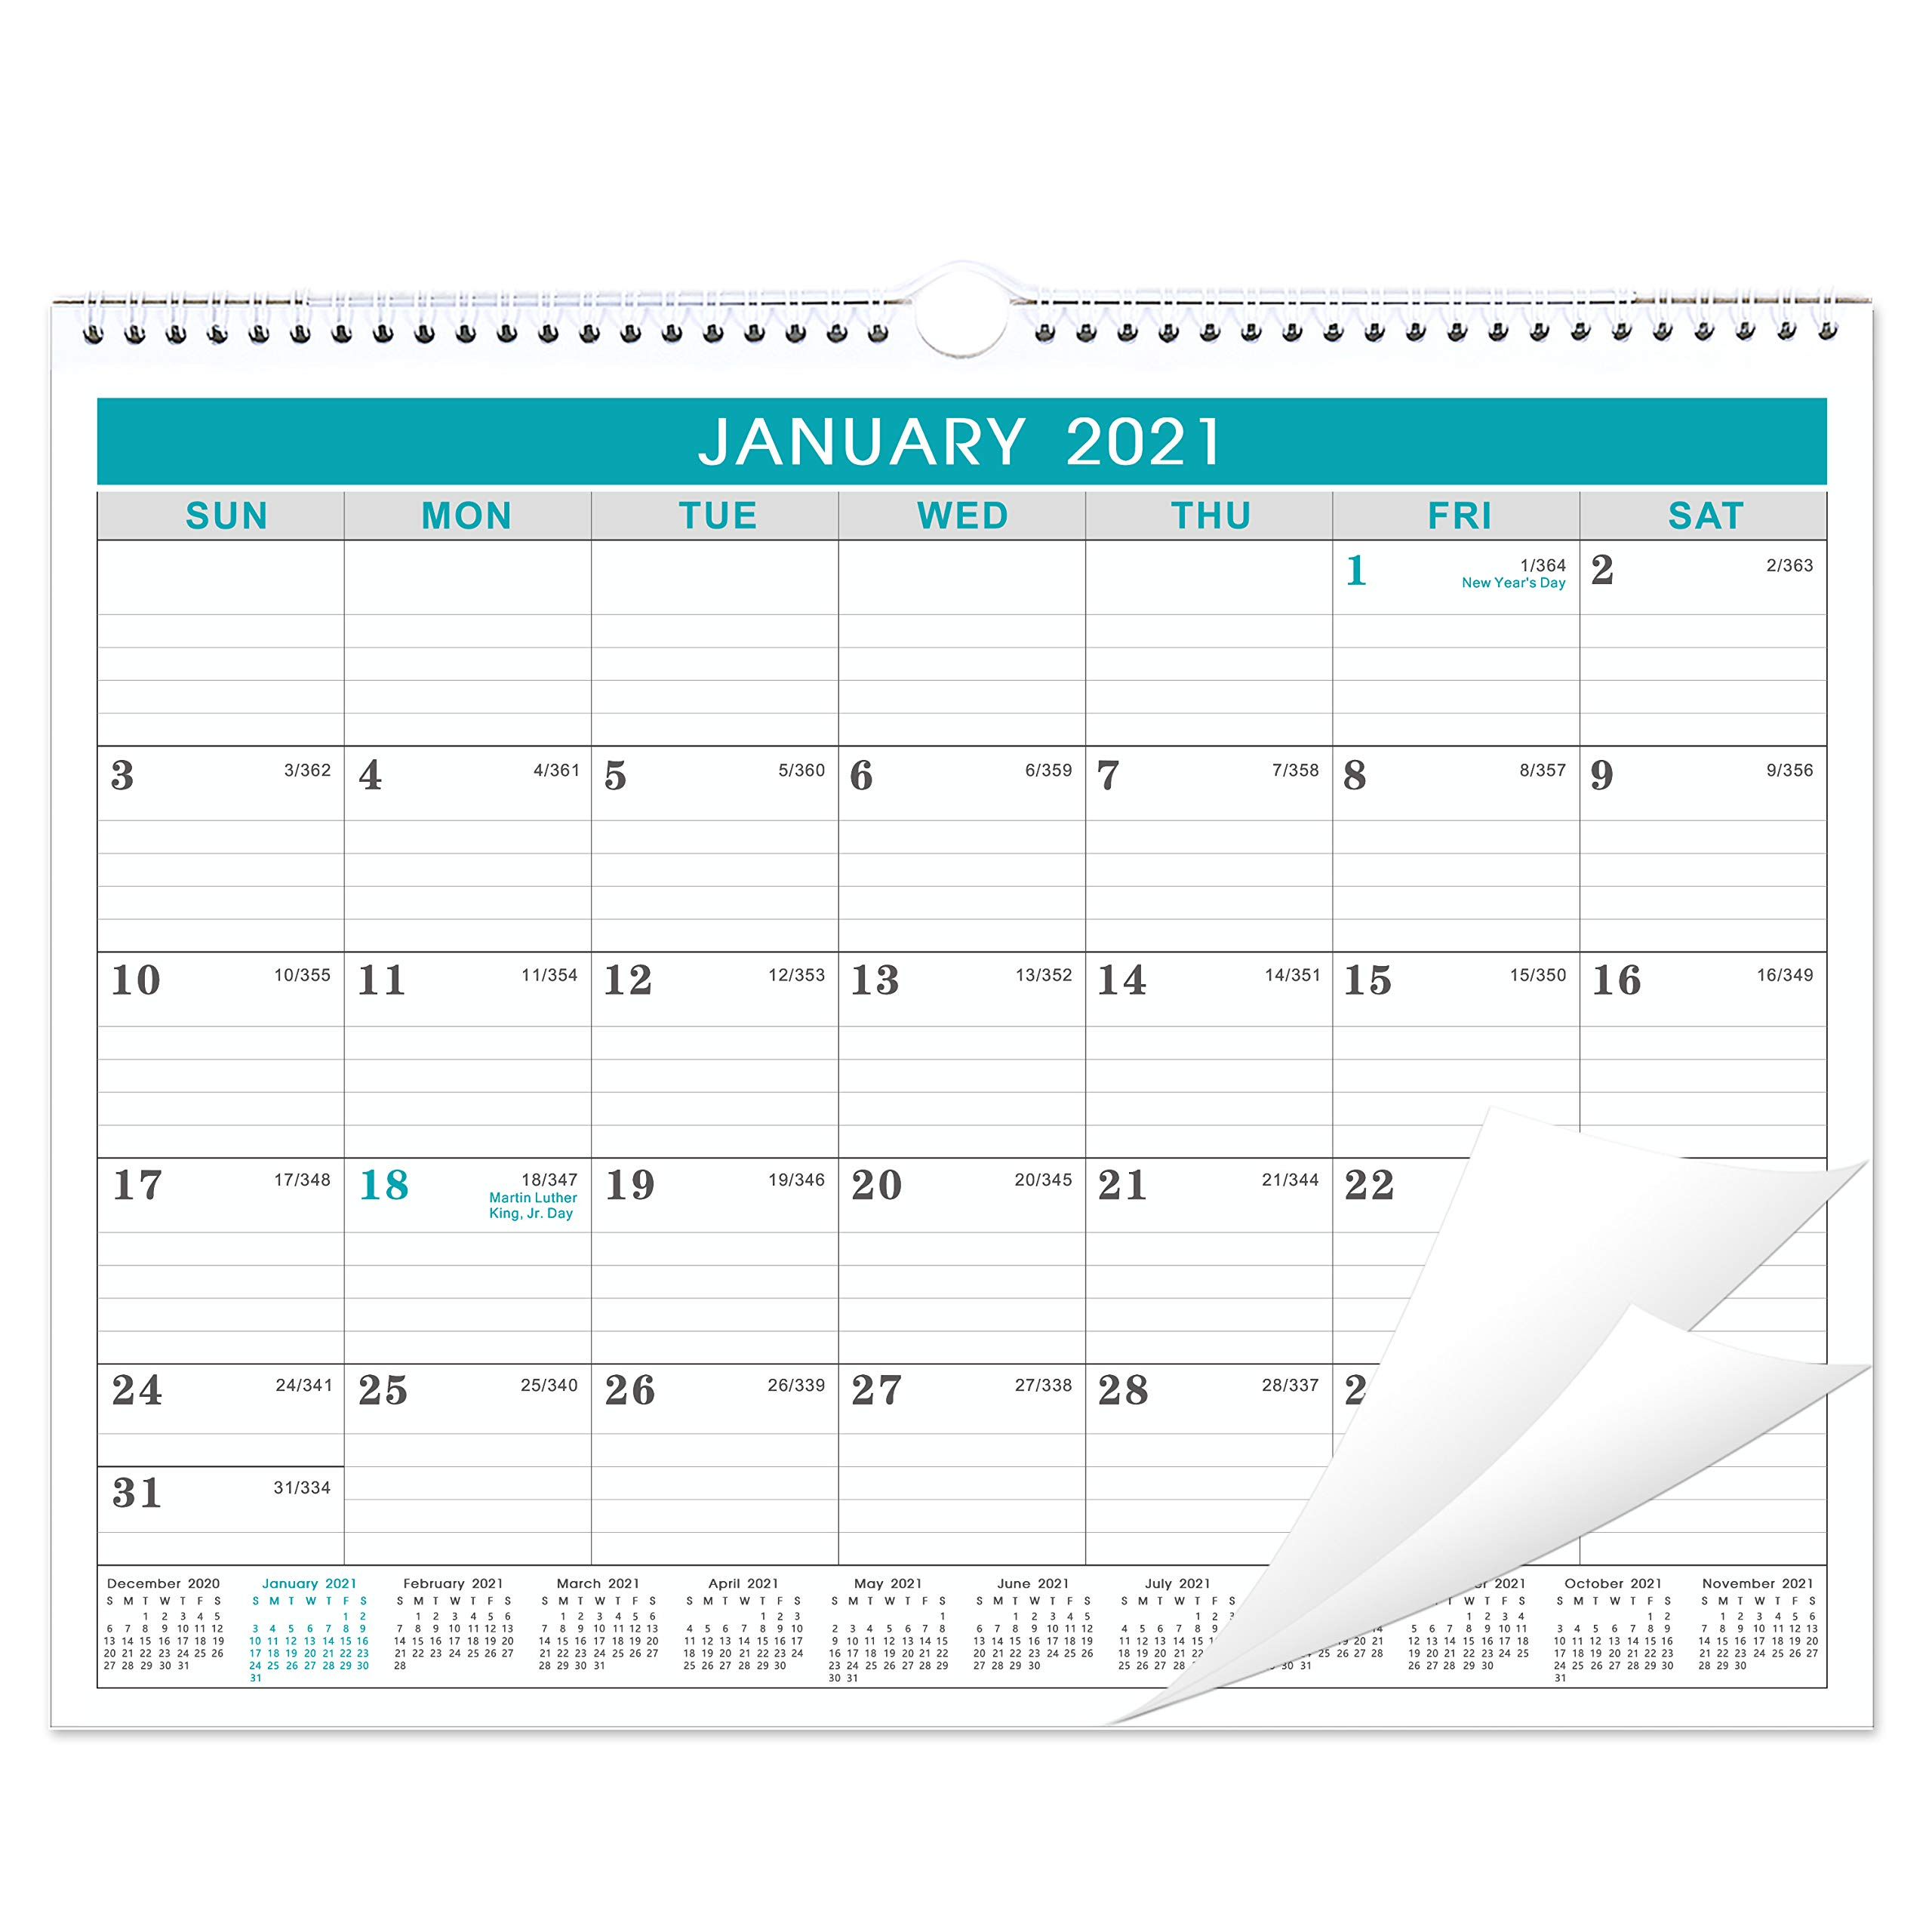 2020 2021 calendar 18 months wall calendar with julian date thick paper perfect for organizing planning july 2020 december 2021 14 75 x 11 5 inches wire bound